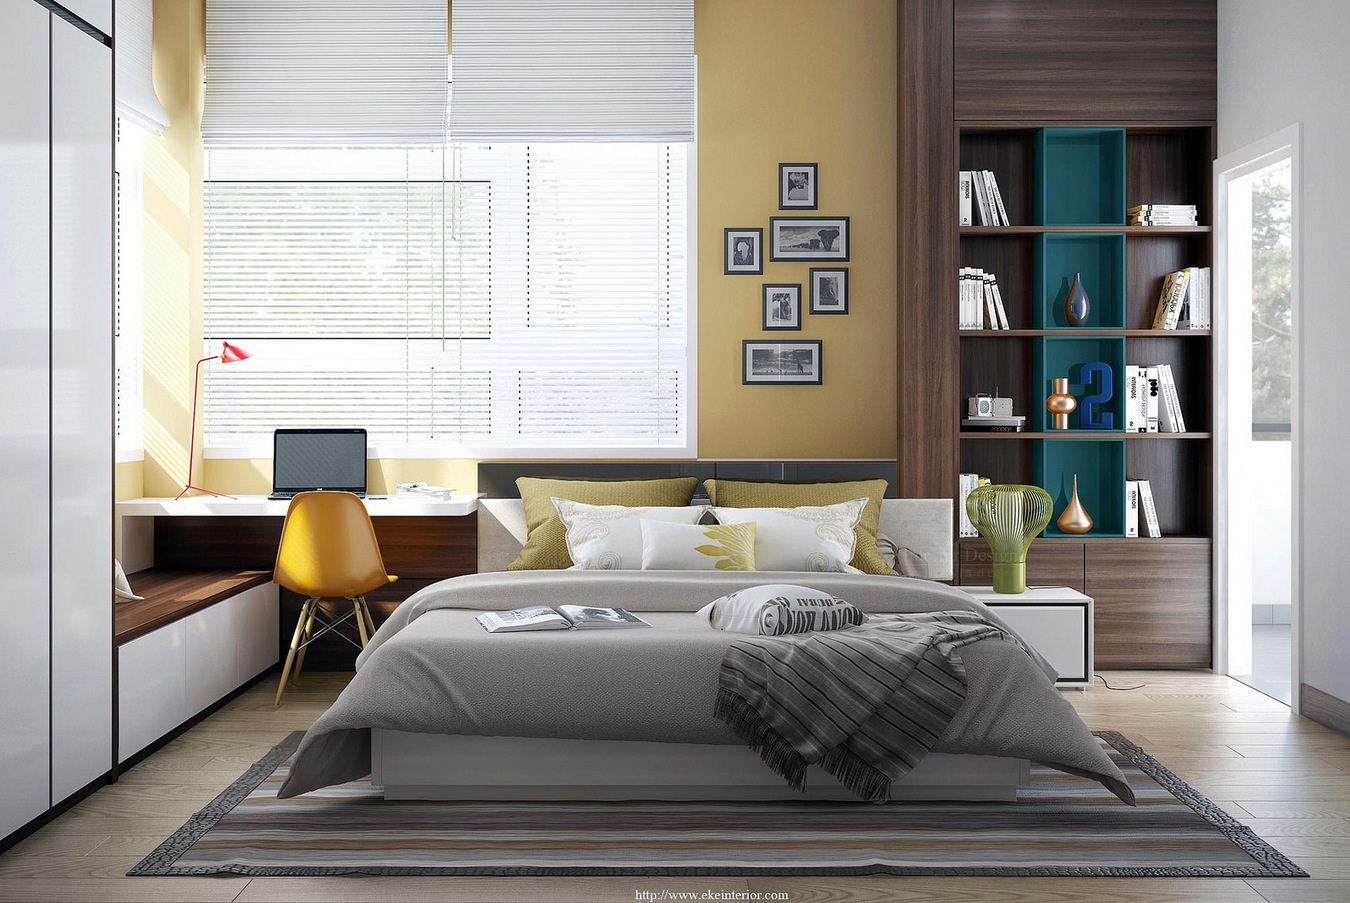 20 modern bedroom designs - Modern Room Decor